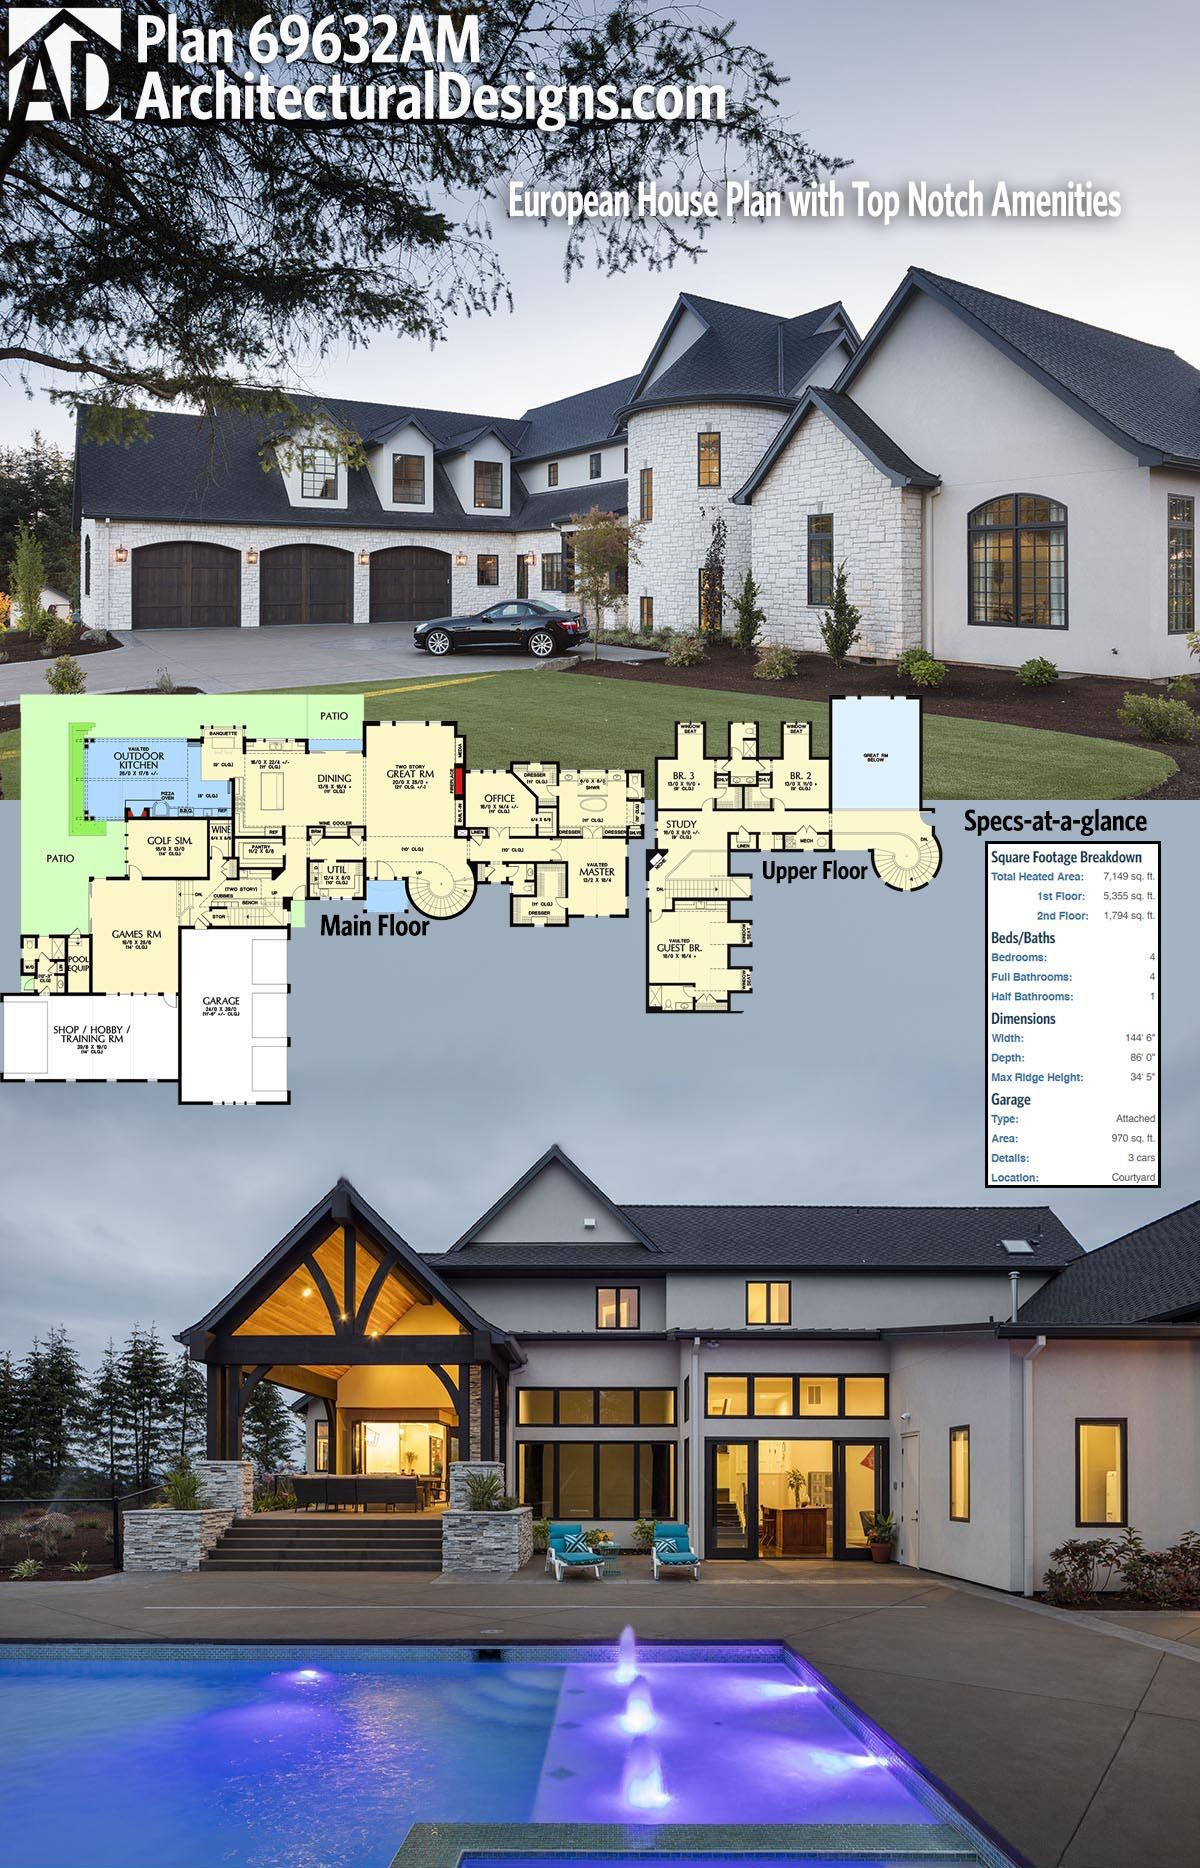 Architectural designs luxury house plan am has huge outdoor